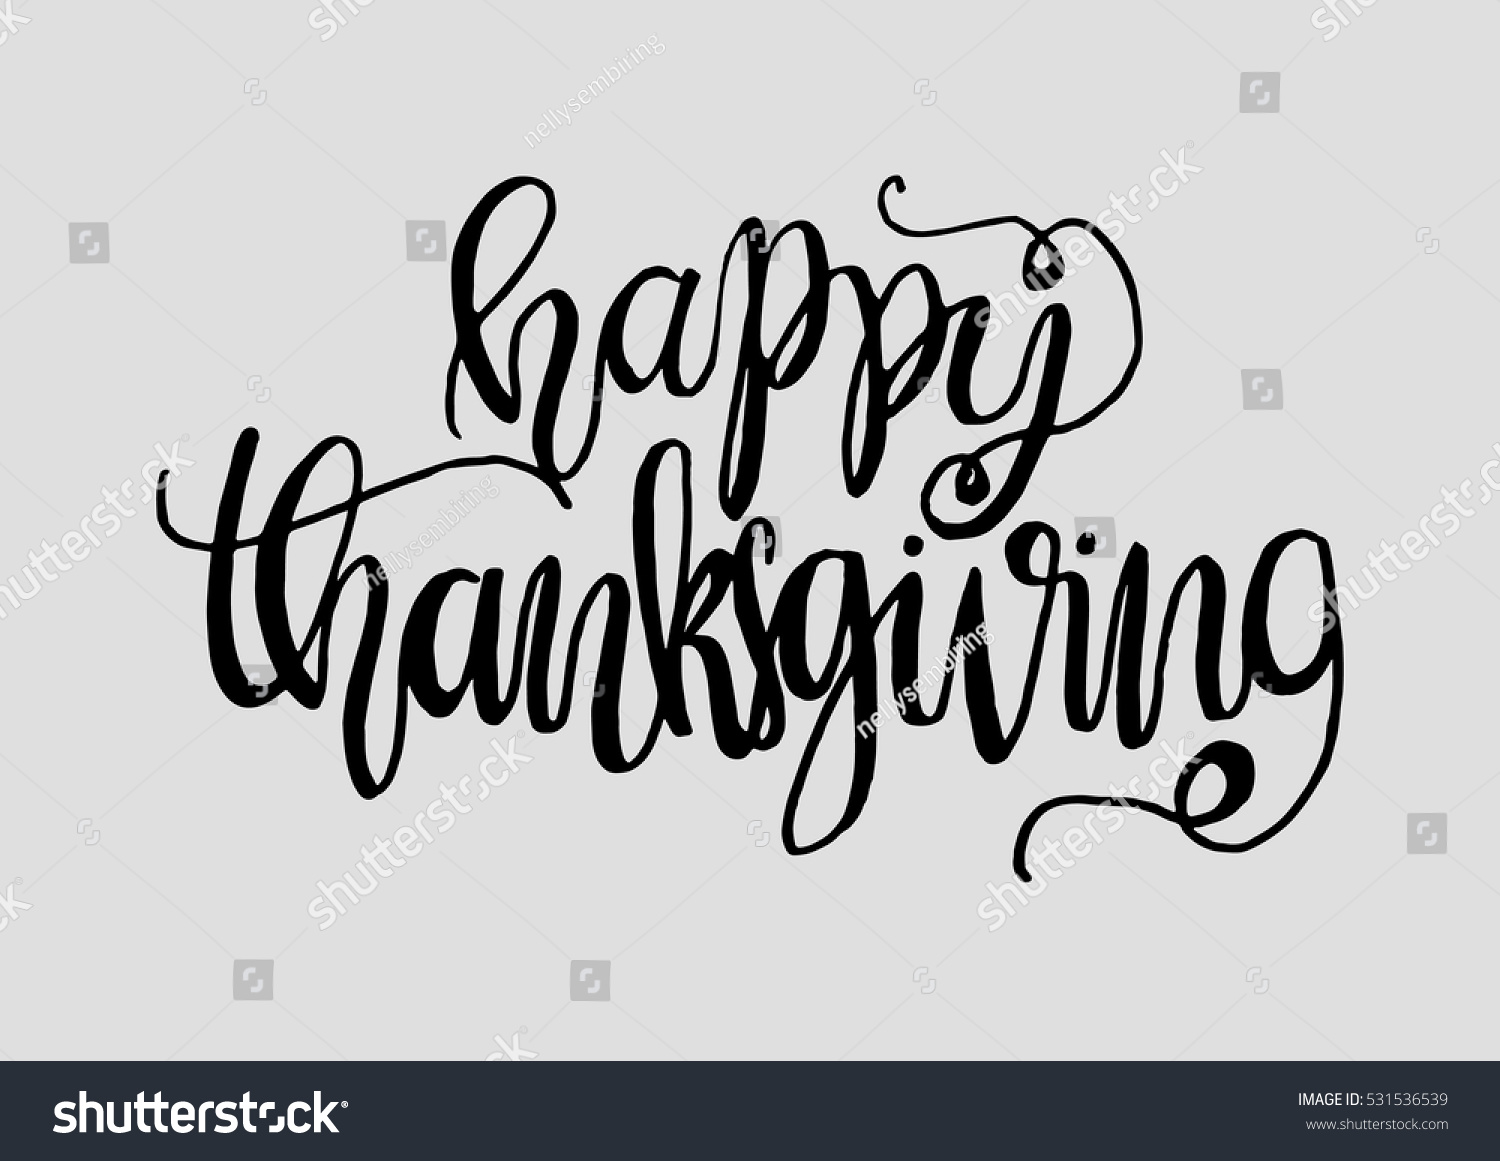 Happy thanksgiving hand drawn celebration quote doodle